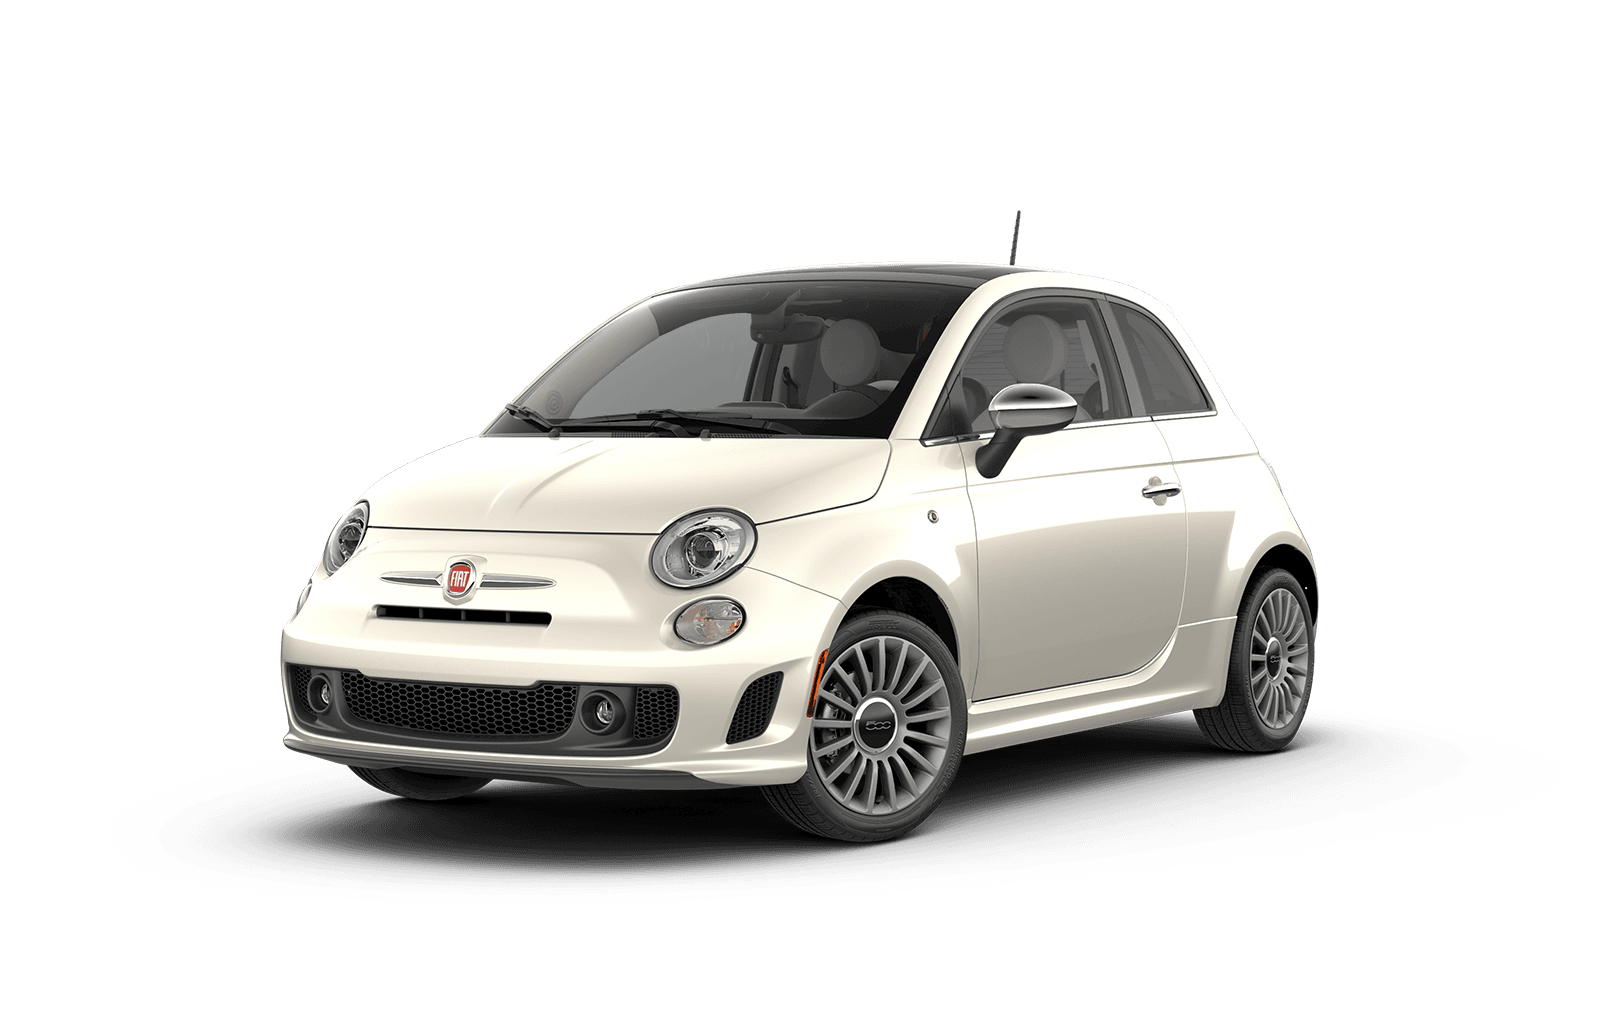 2019 FIAT 500 Full View in White with Wheels